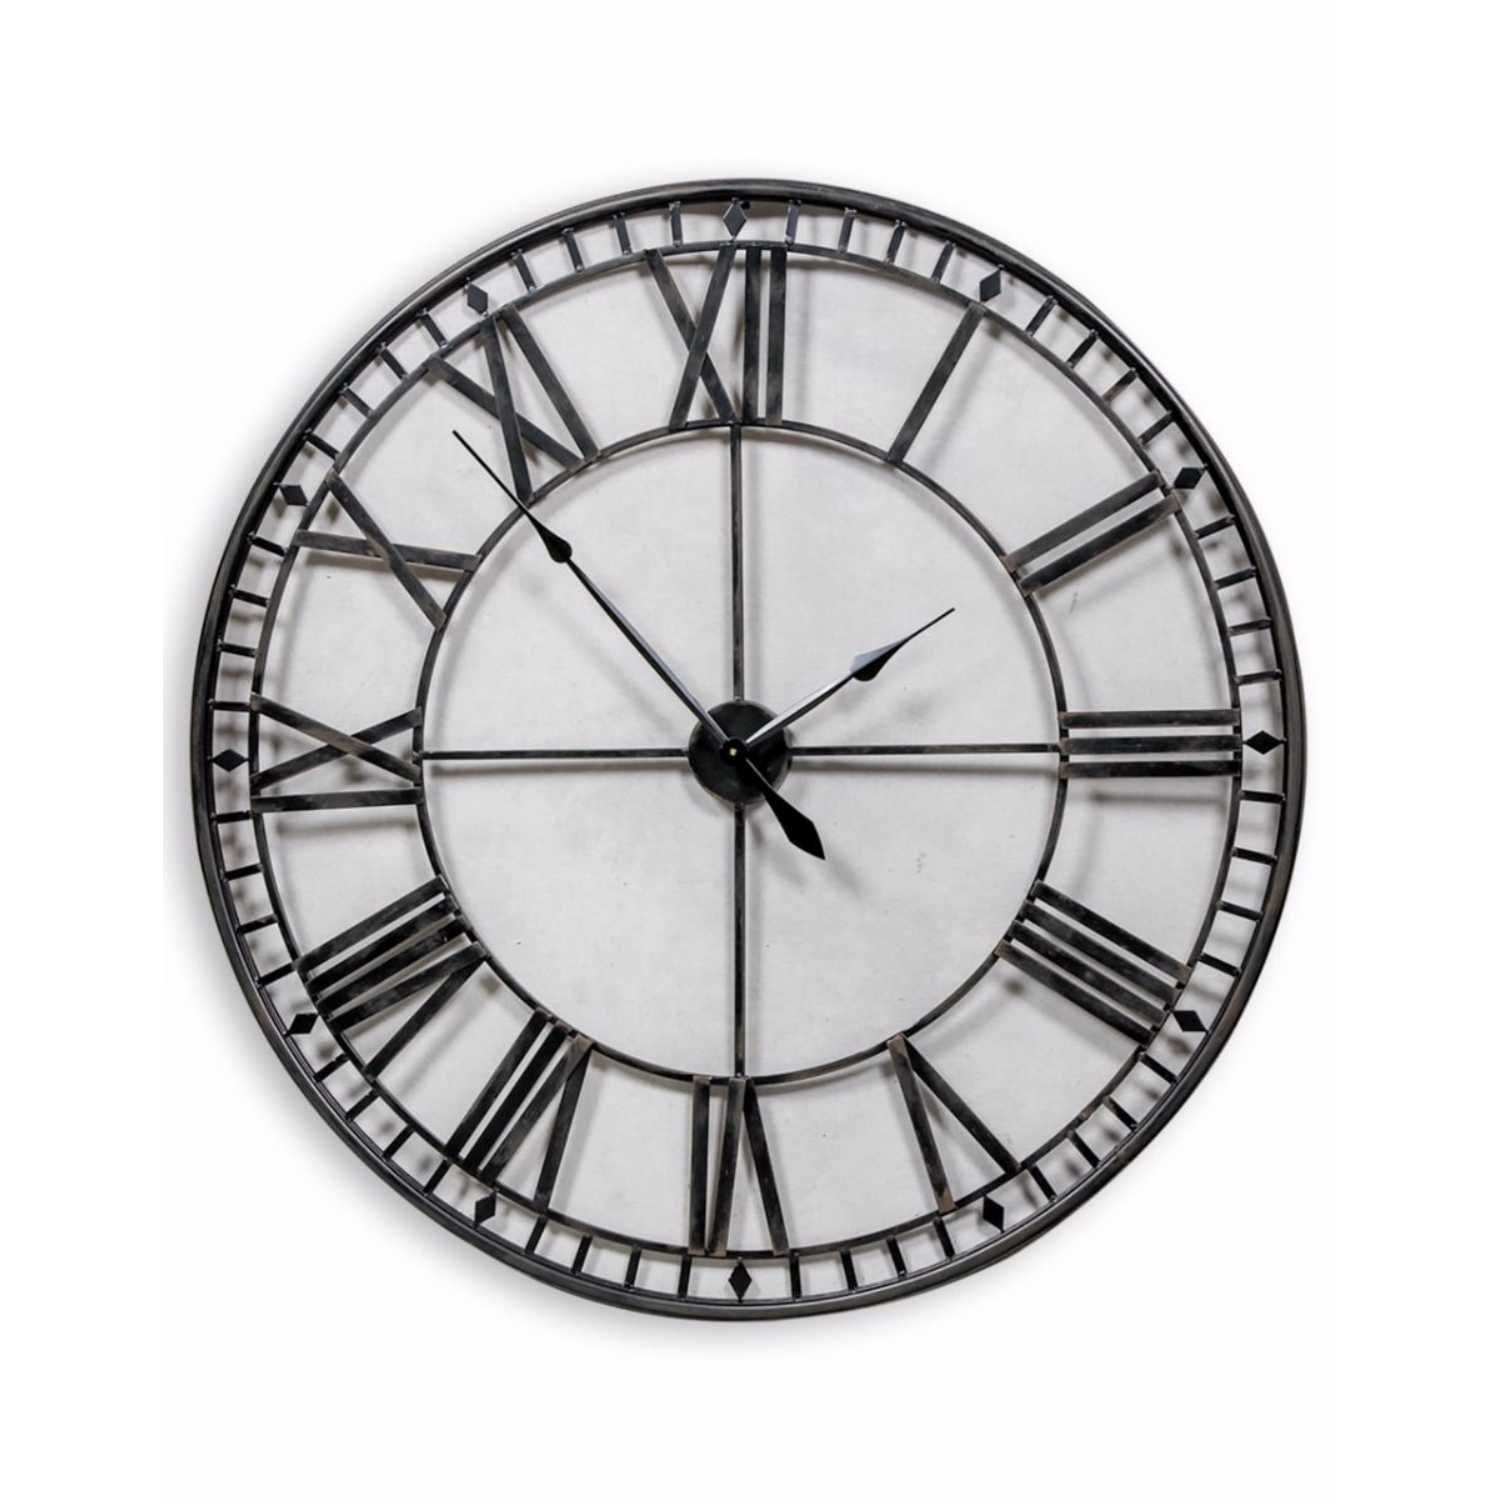 Large Iron 120cm Diameter Round Black Painted Metal Skeleton Wall Clock Roman Numerals In 2020 Roman Numeral Wall Clock Skeleton Wall Clock Wall Clock